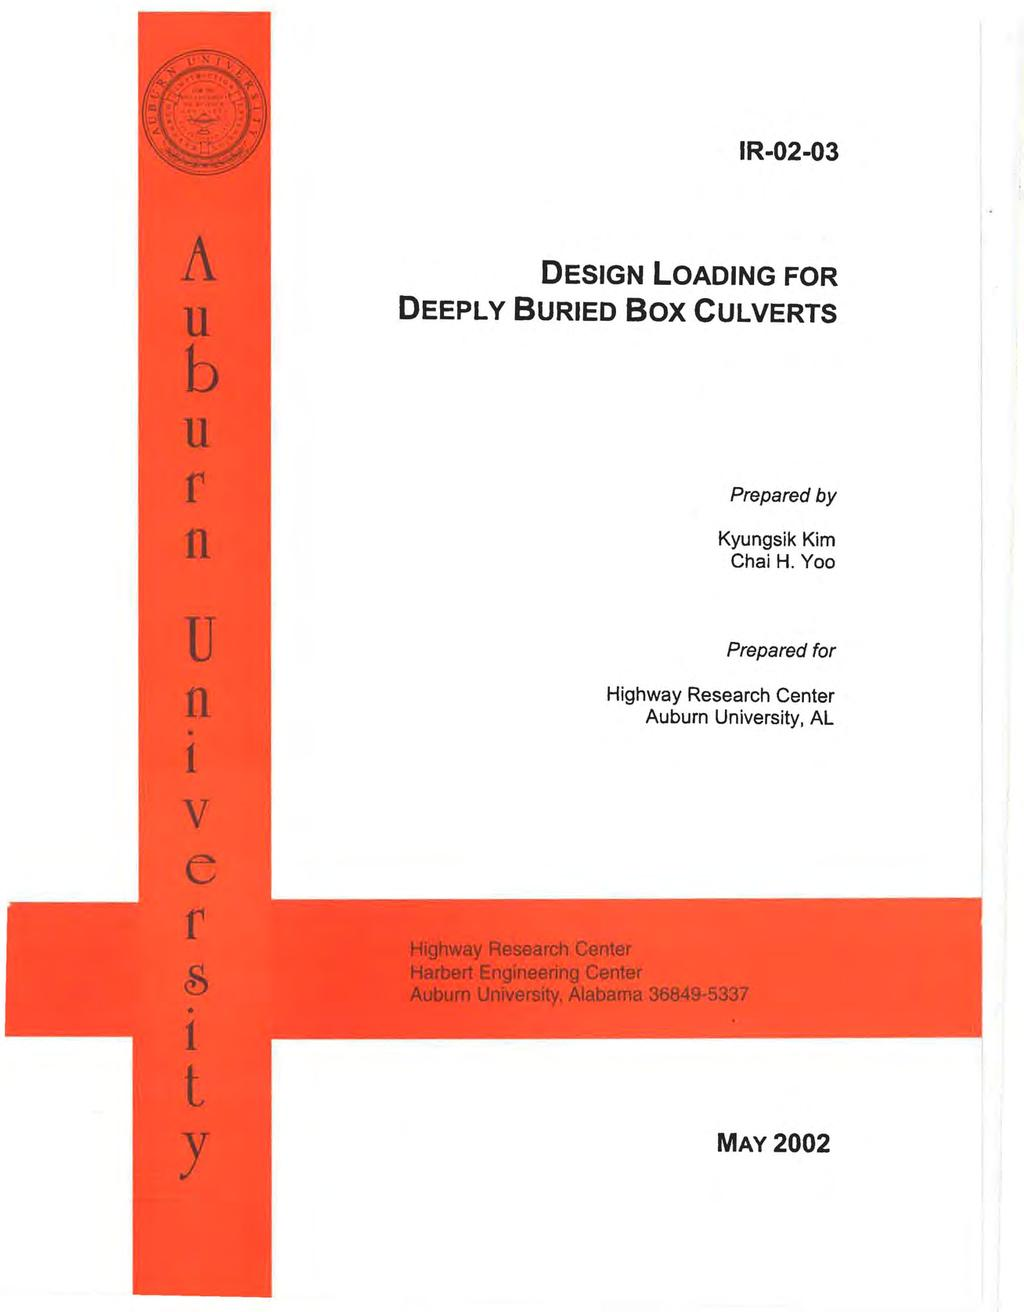 DESIGN LOADING FOR DEEPLY BURIED Box CULVERTS - PDF